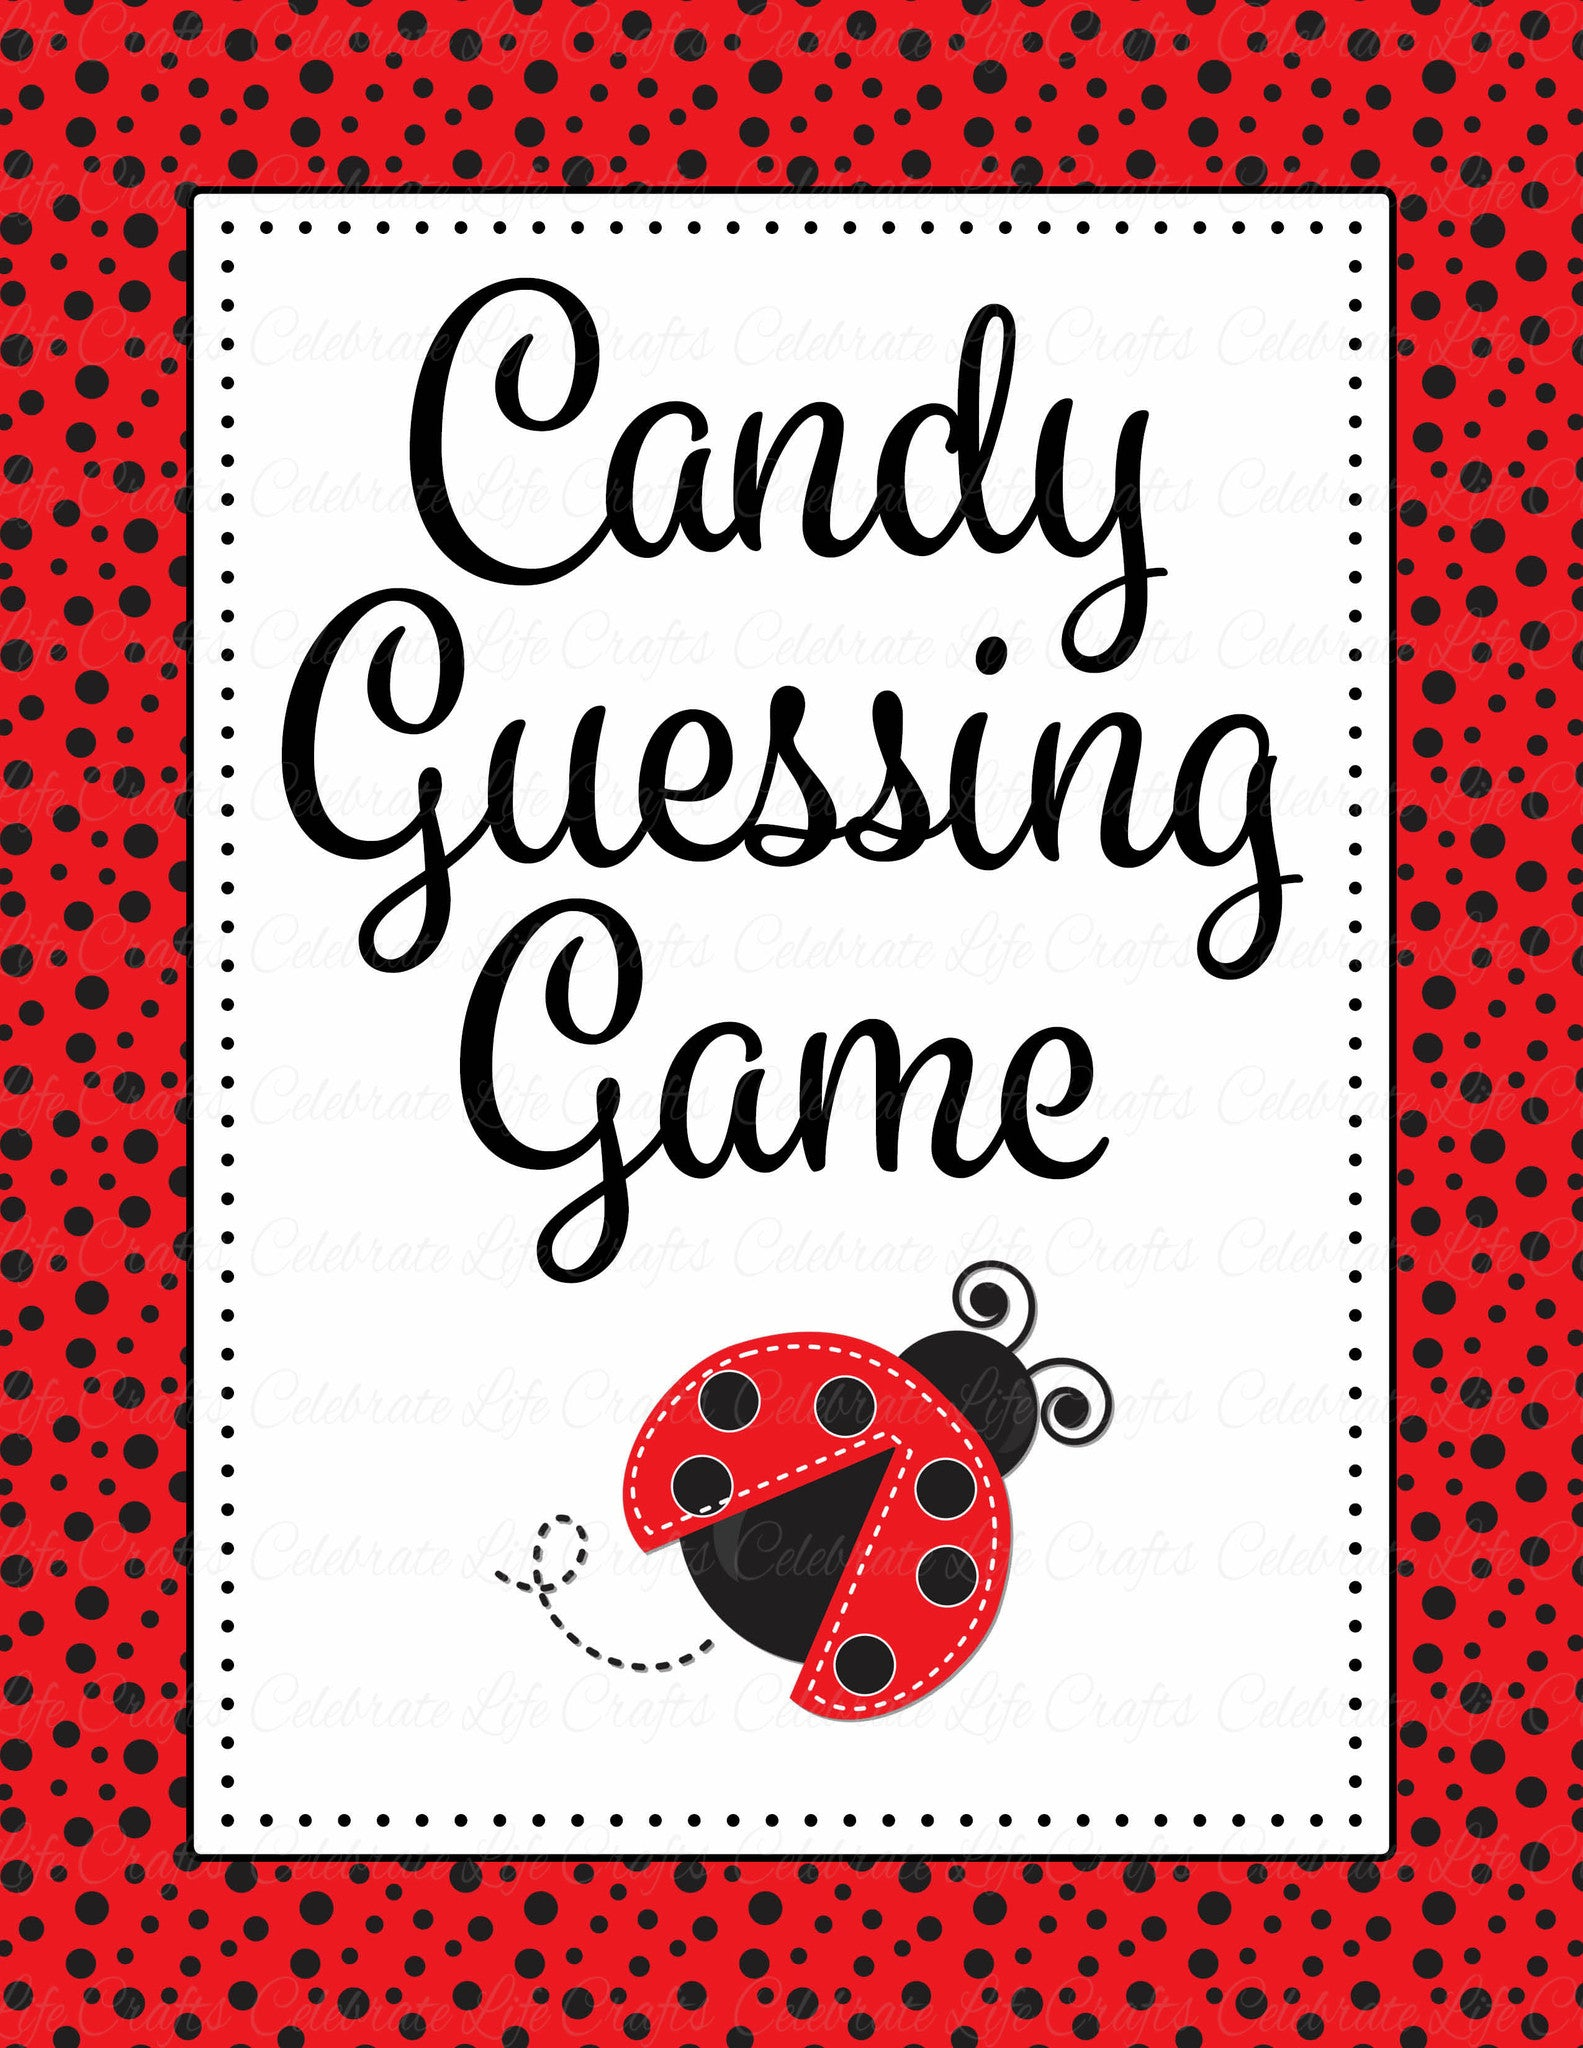 picture regarding Guess Who Game Printable named Sweet Guessing Sport - Printable Obtain - Crimson Black